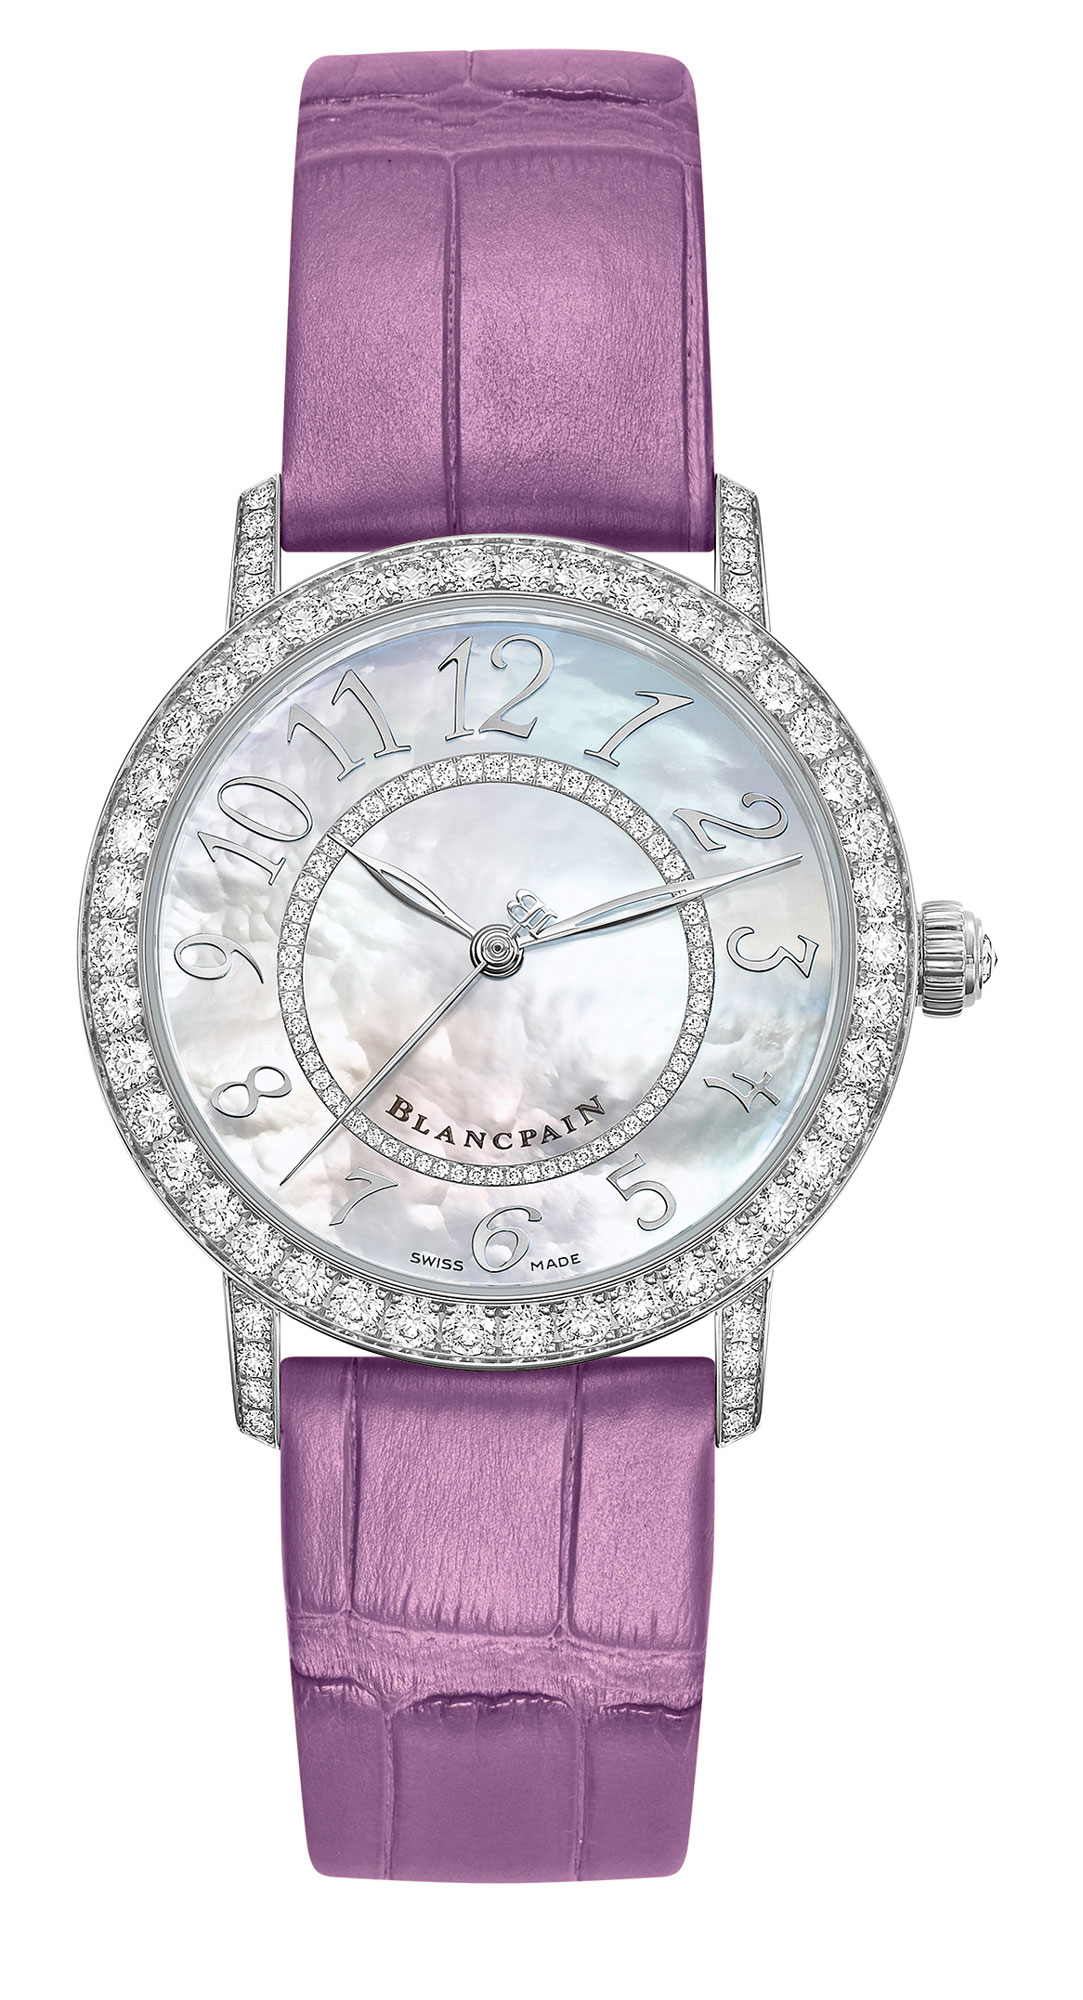 Blancpain Ladybird Colors – Ref. 3660-1954-V55A